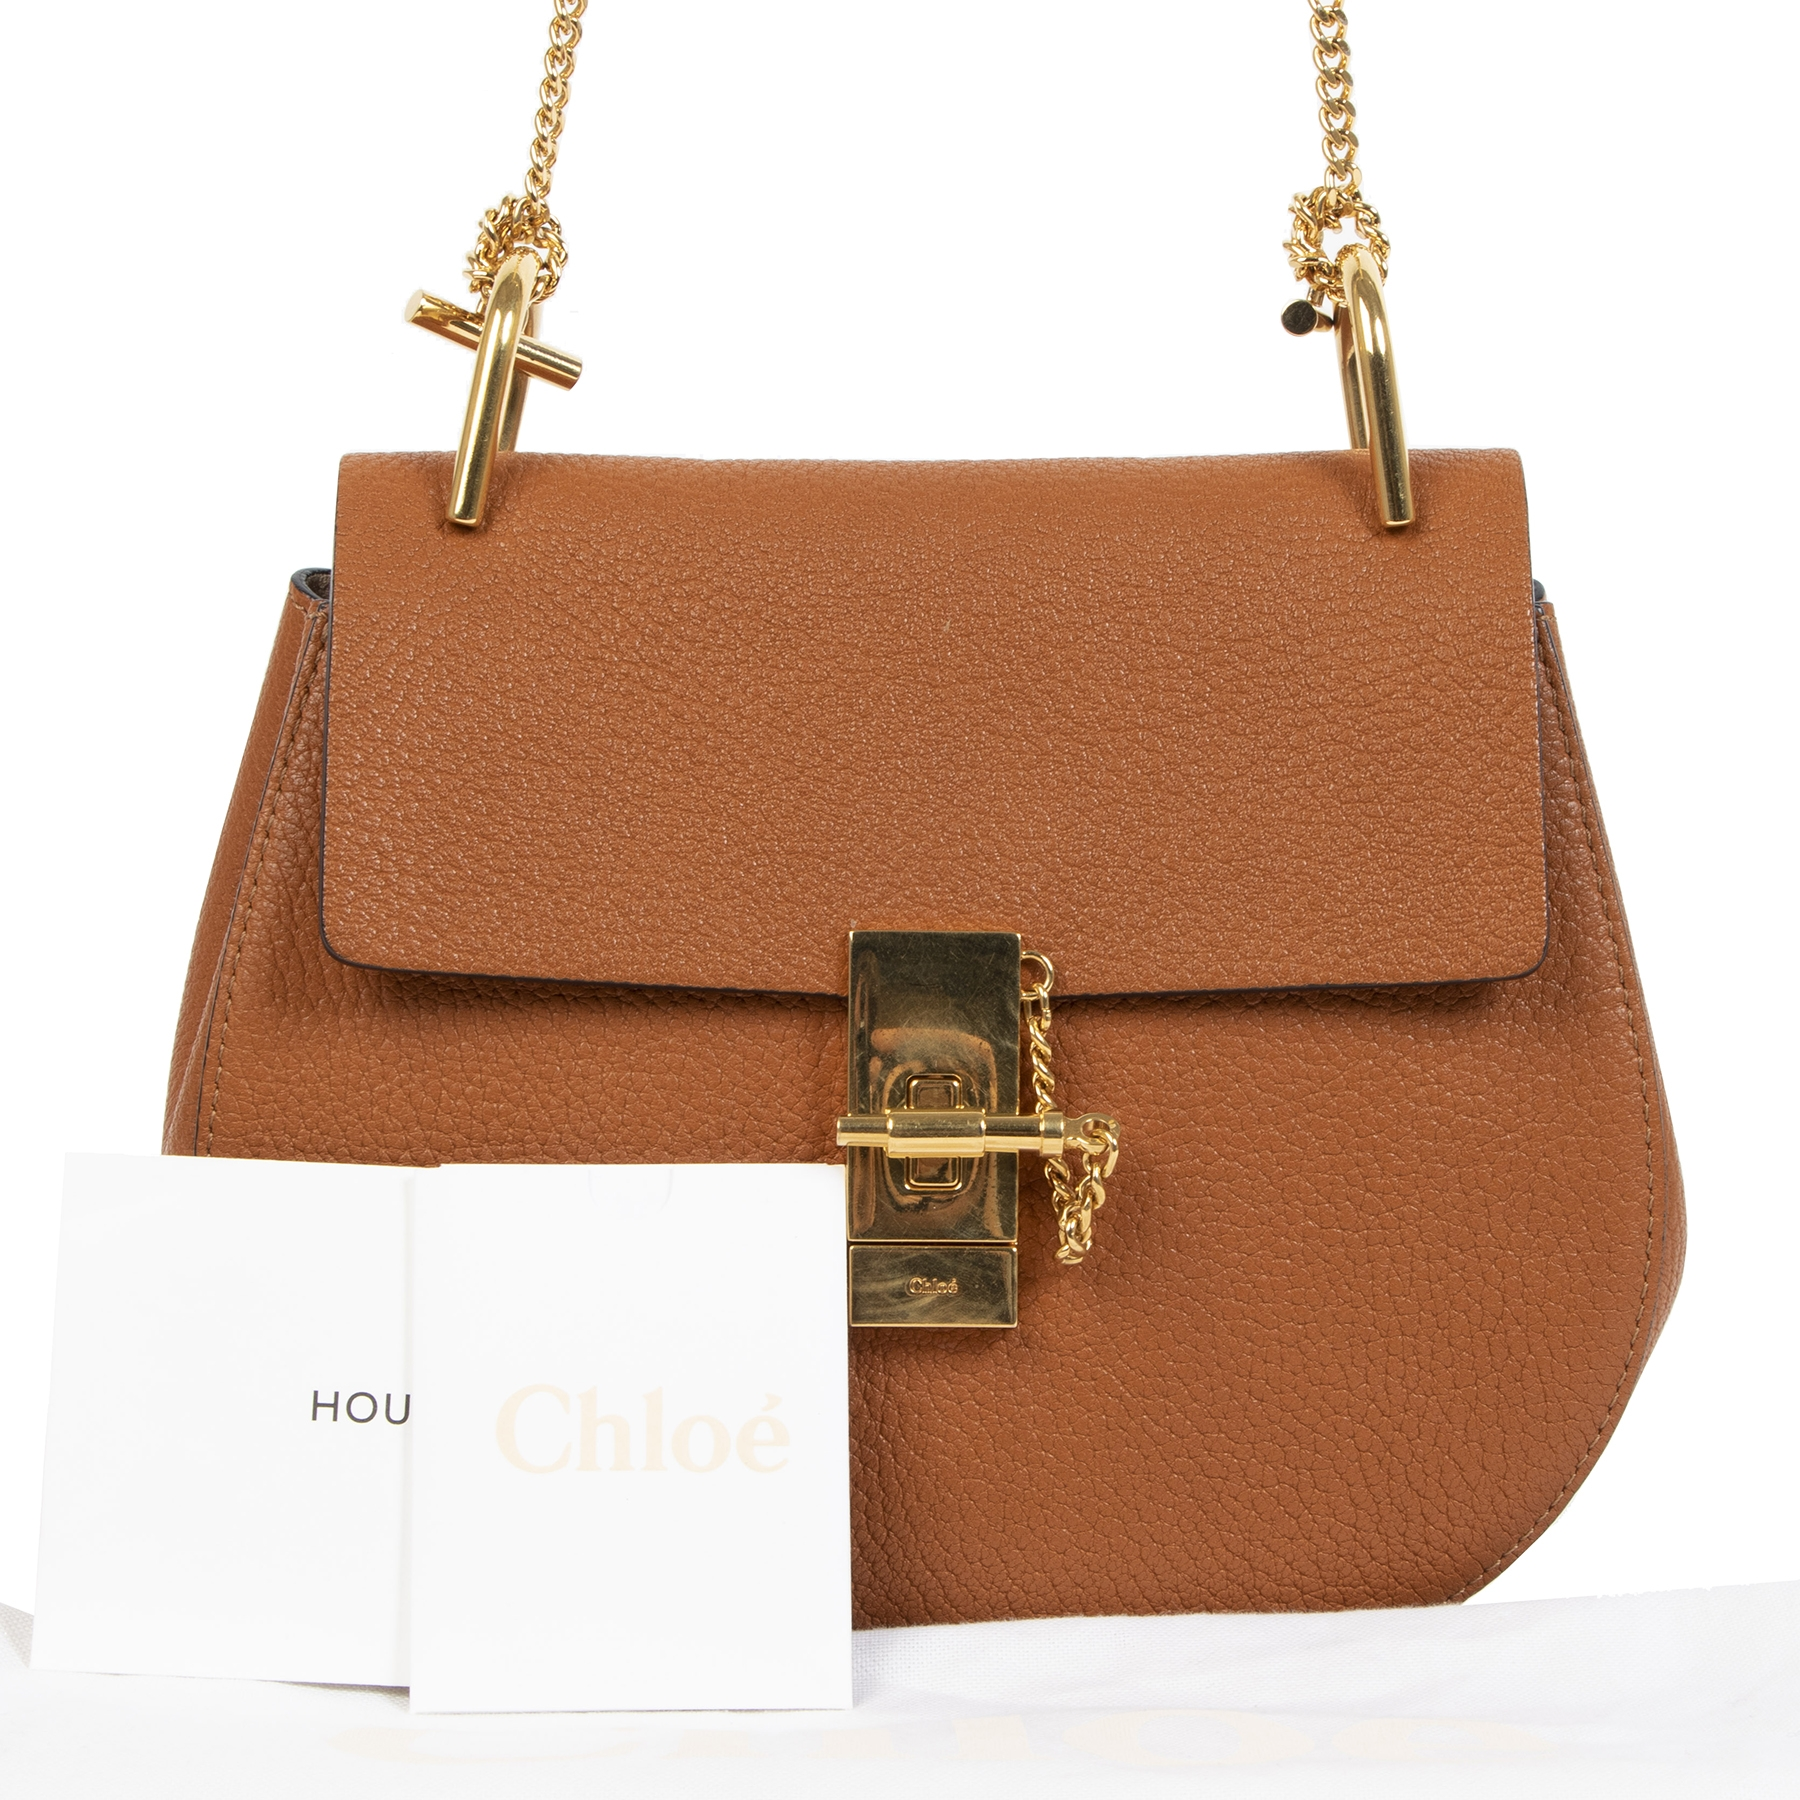 Chloé Tan Grained Calfskin Medium Drew Bag